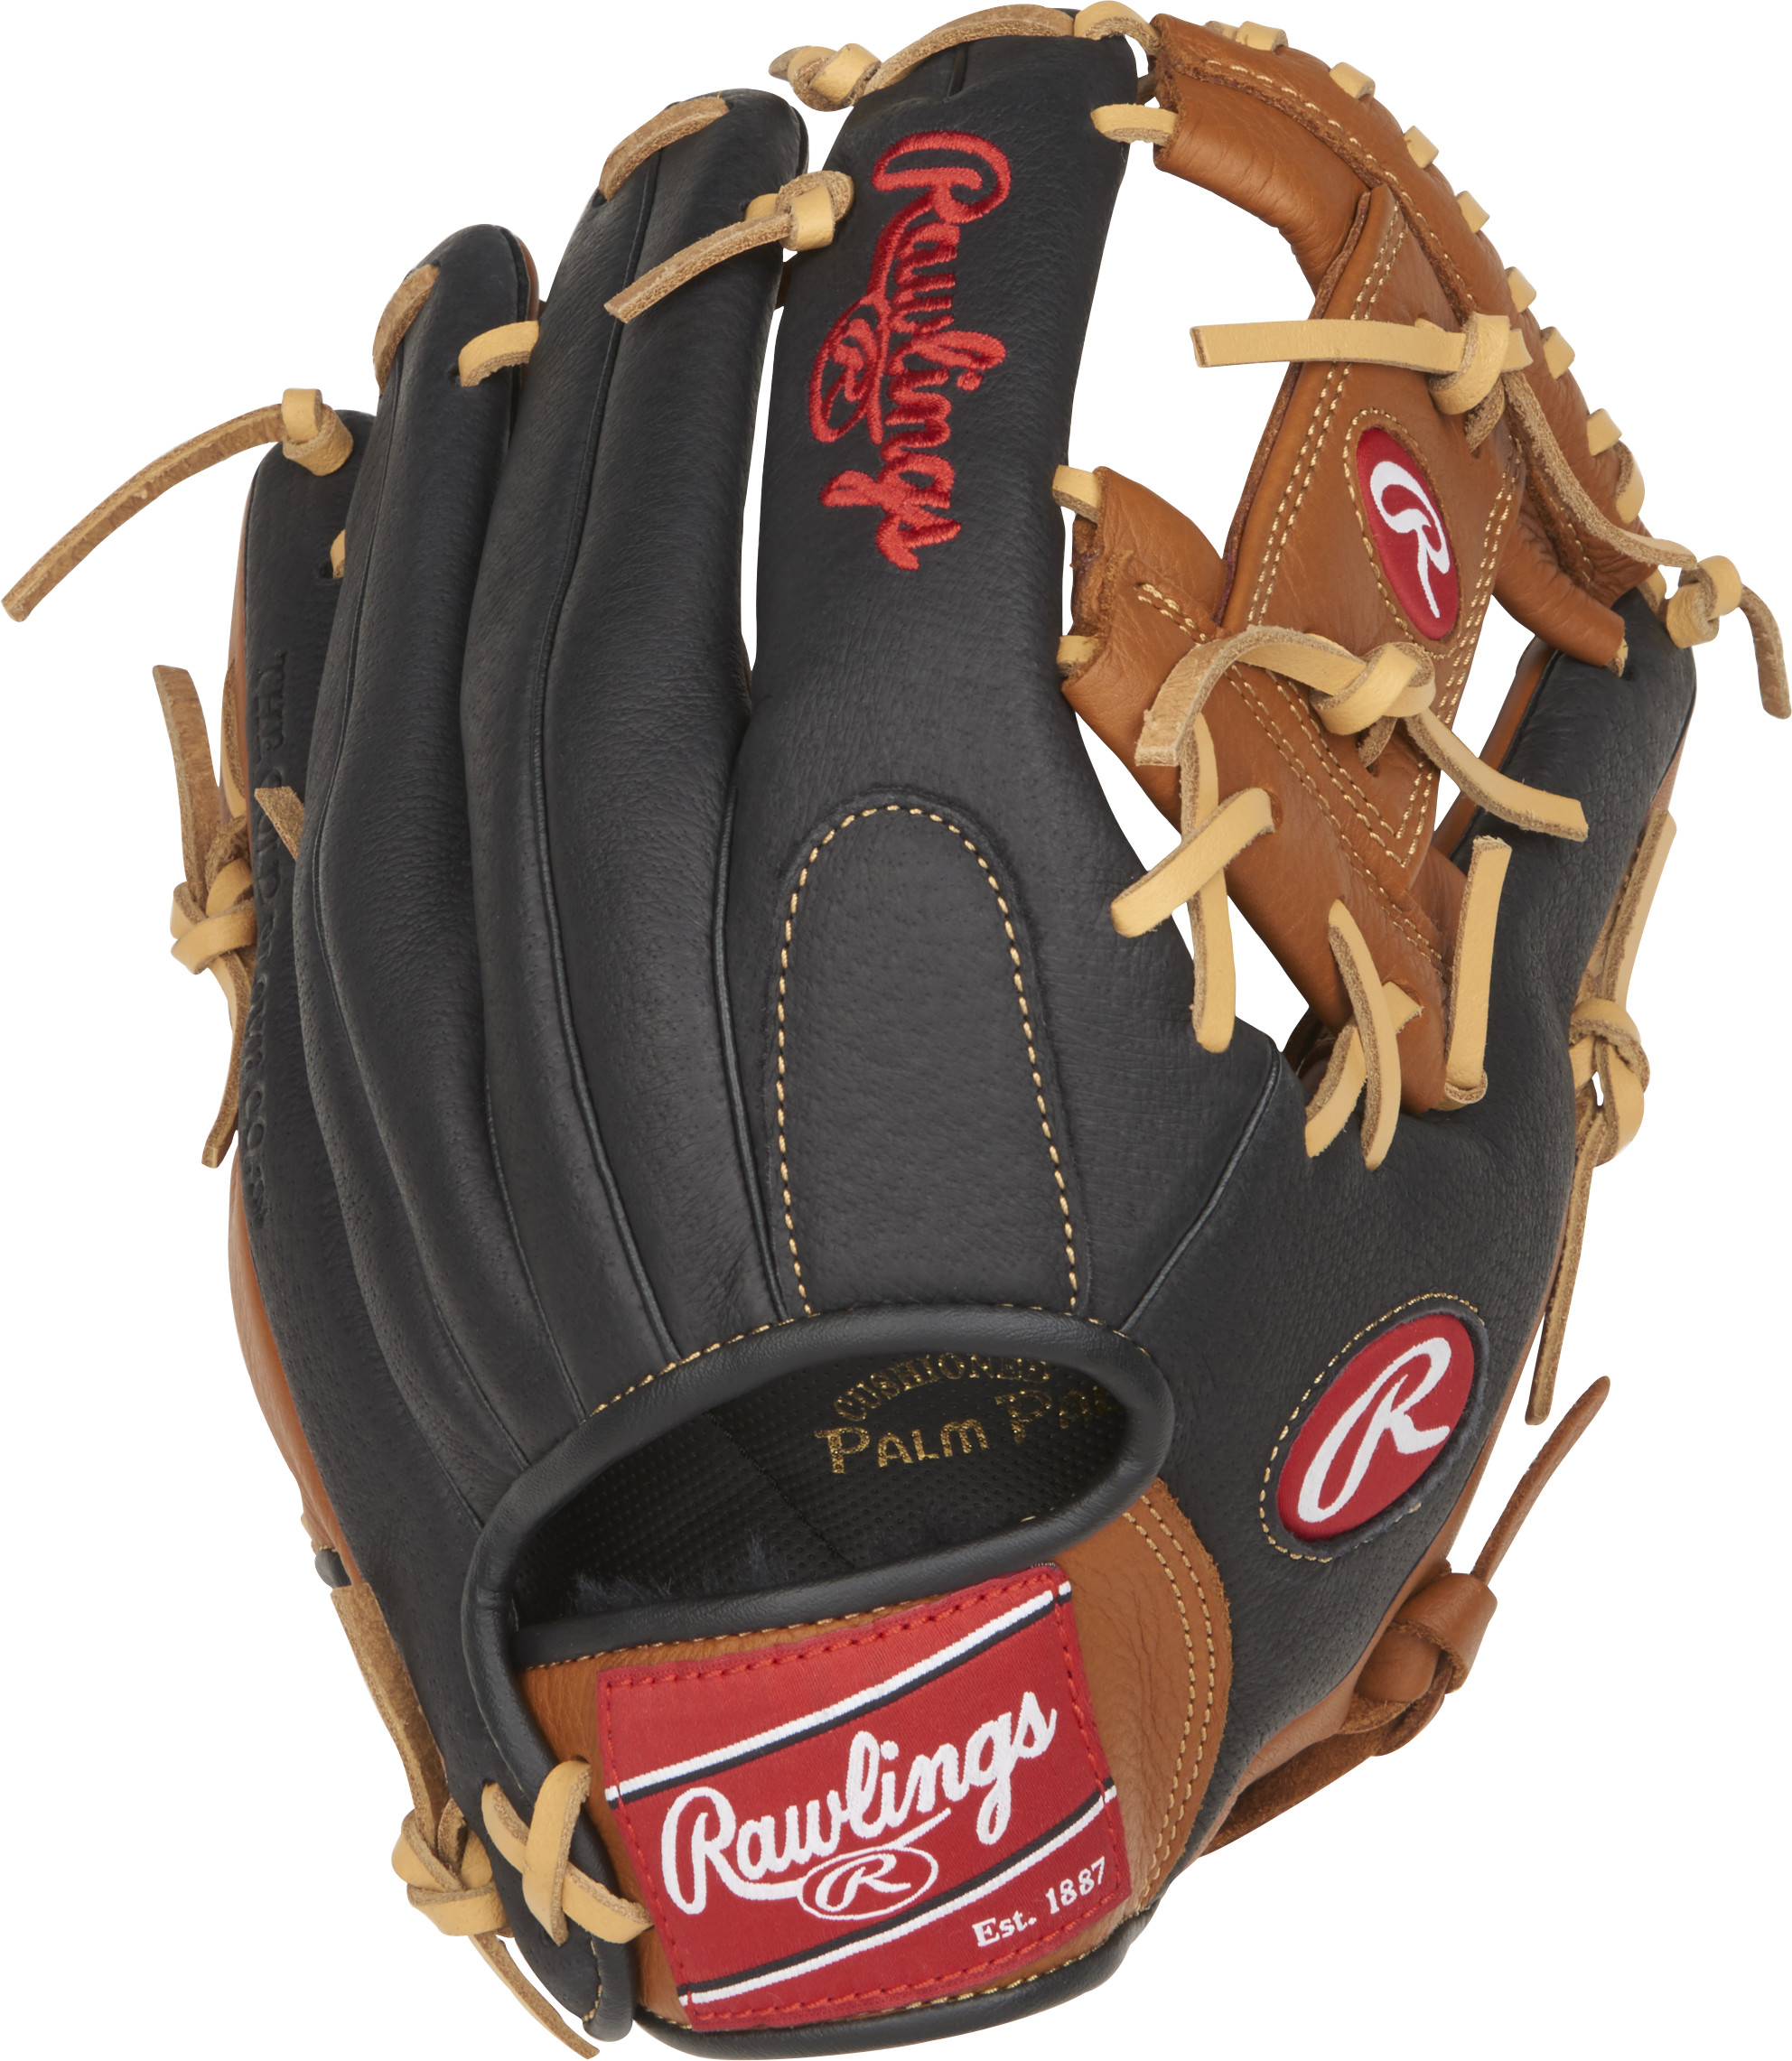 http://www.bestbatdeals.com/images/gloves/rawlings/P115GBI-2.jpg